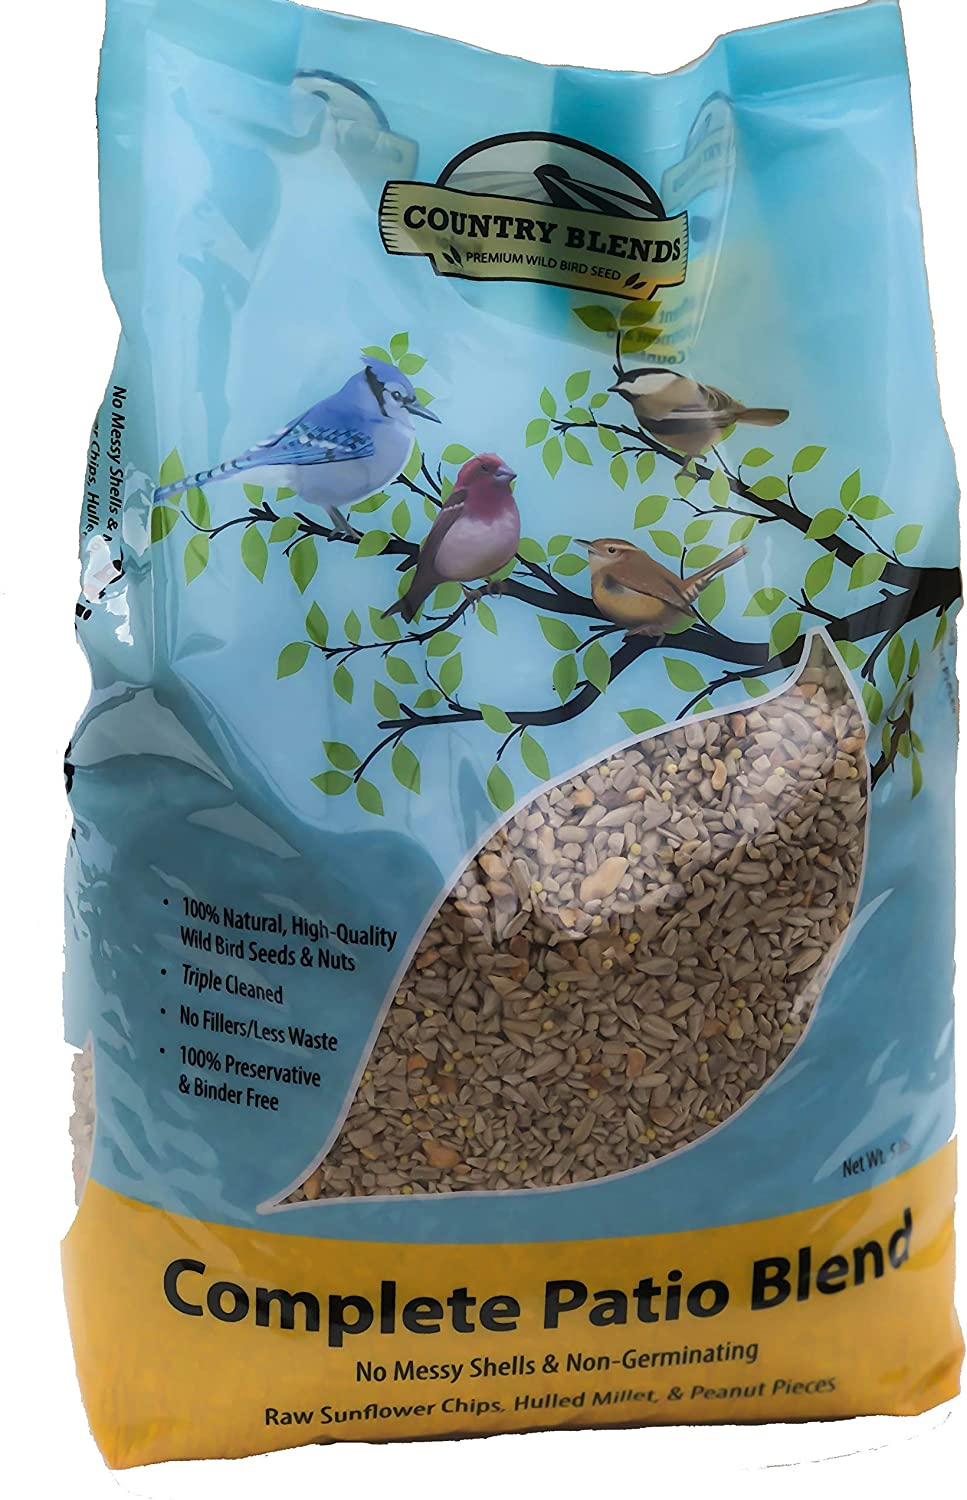 Country Blends Complete Patio Blend, 5 lbs Bag - Wild Bird Food Seed and Nut Mix